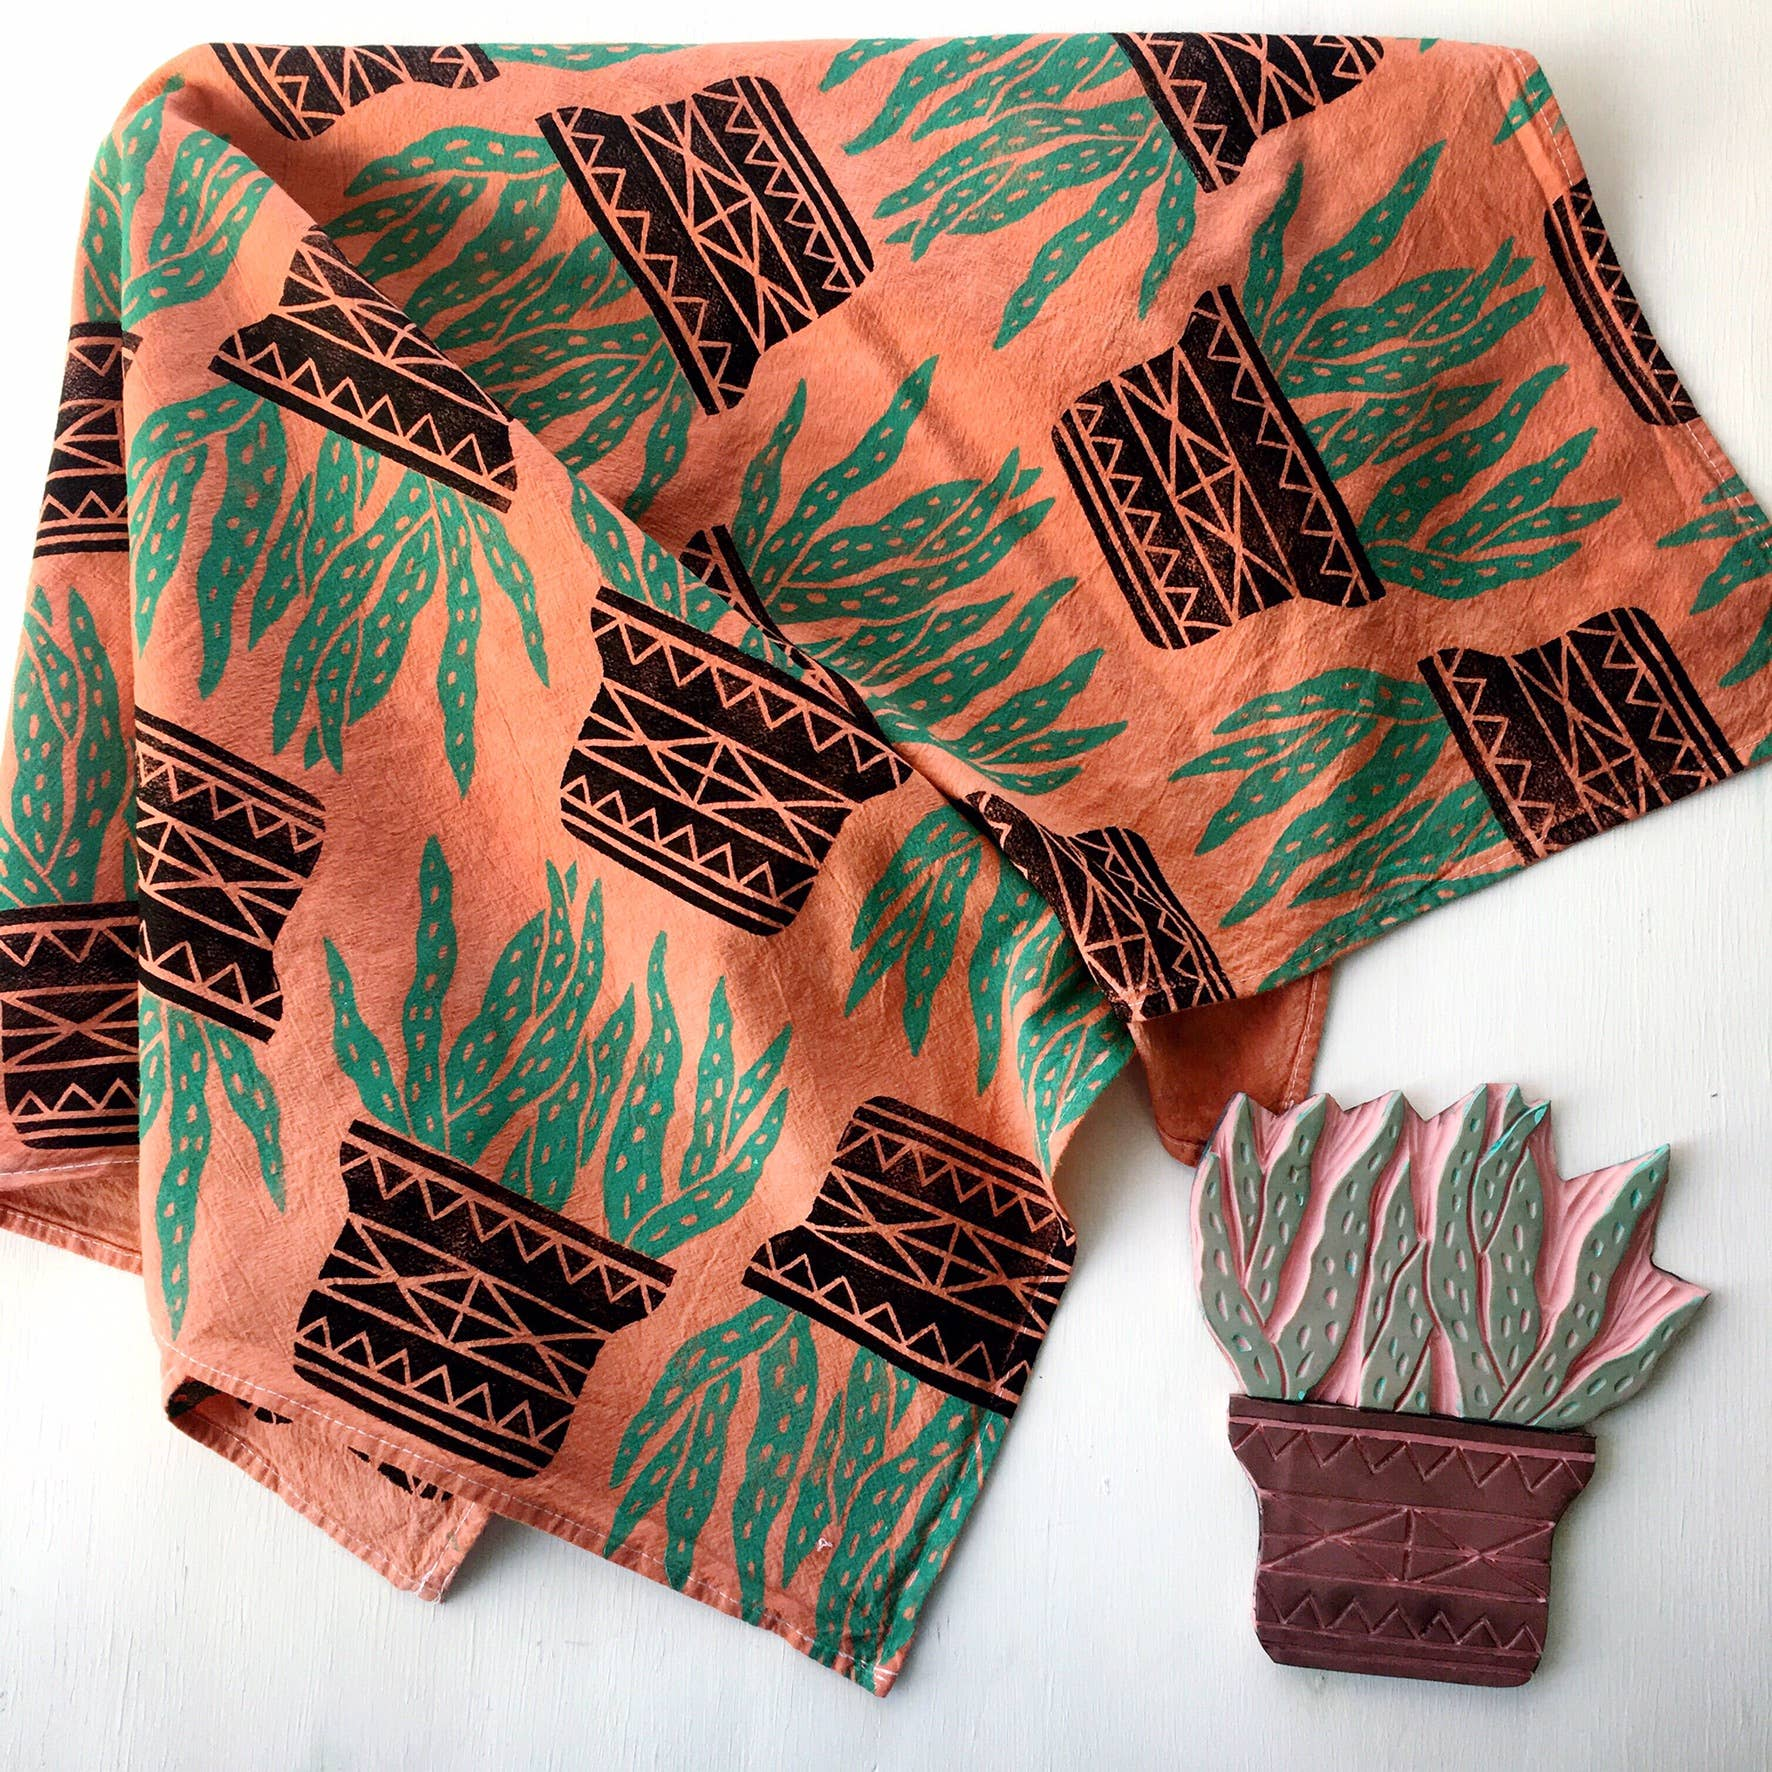 Andria Green: Aloe Vera Tea Towel, Terracotta